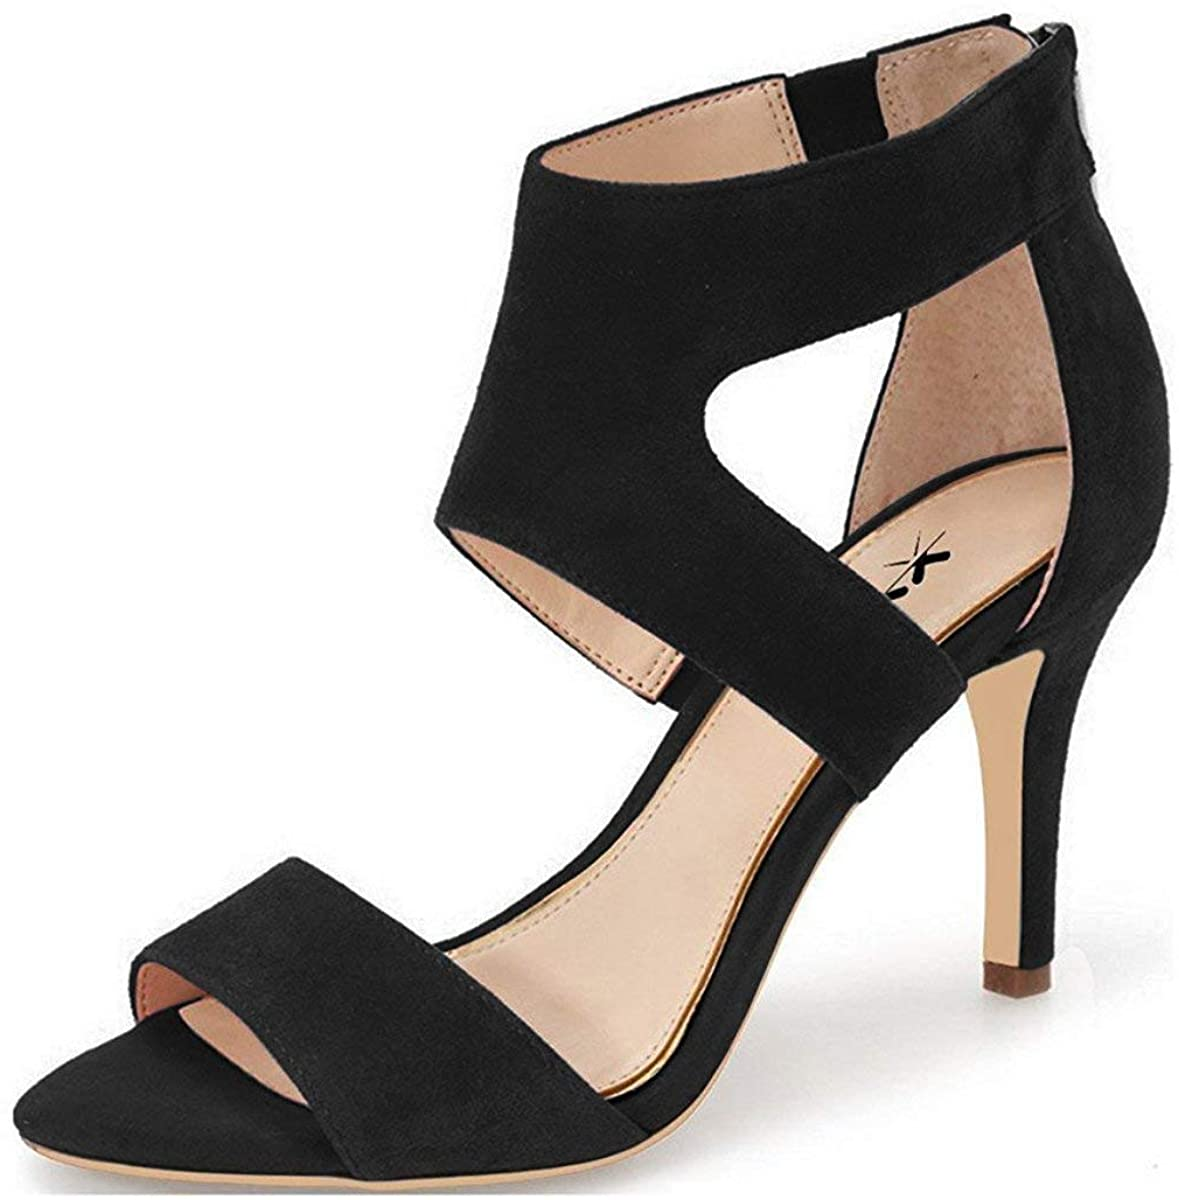 XYD Prom Dancing Shoes Elegant Open Toe Strappy Heeled Sandals Ankle Wrap Dress Pumps for Women